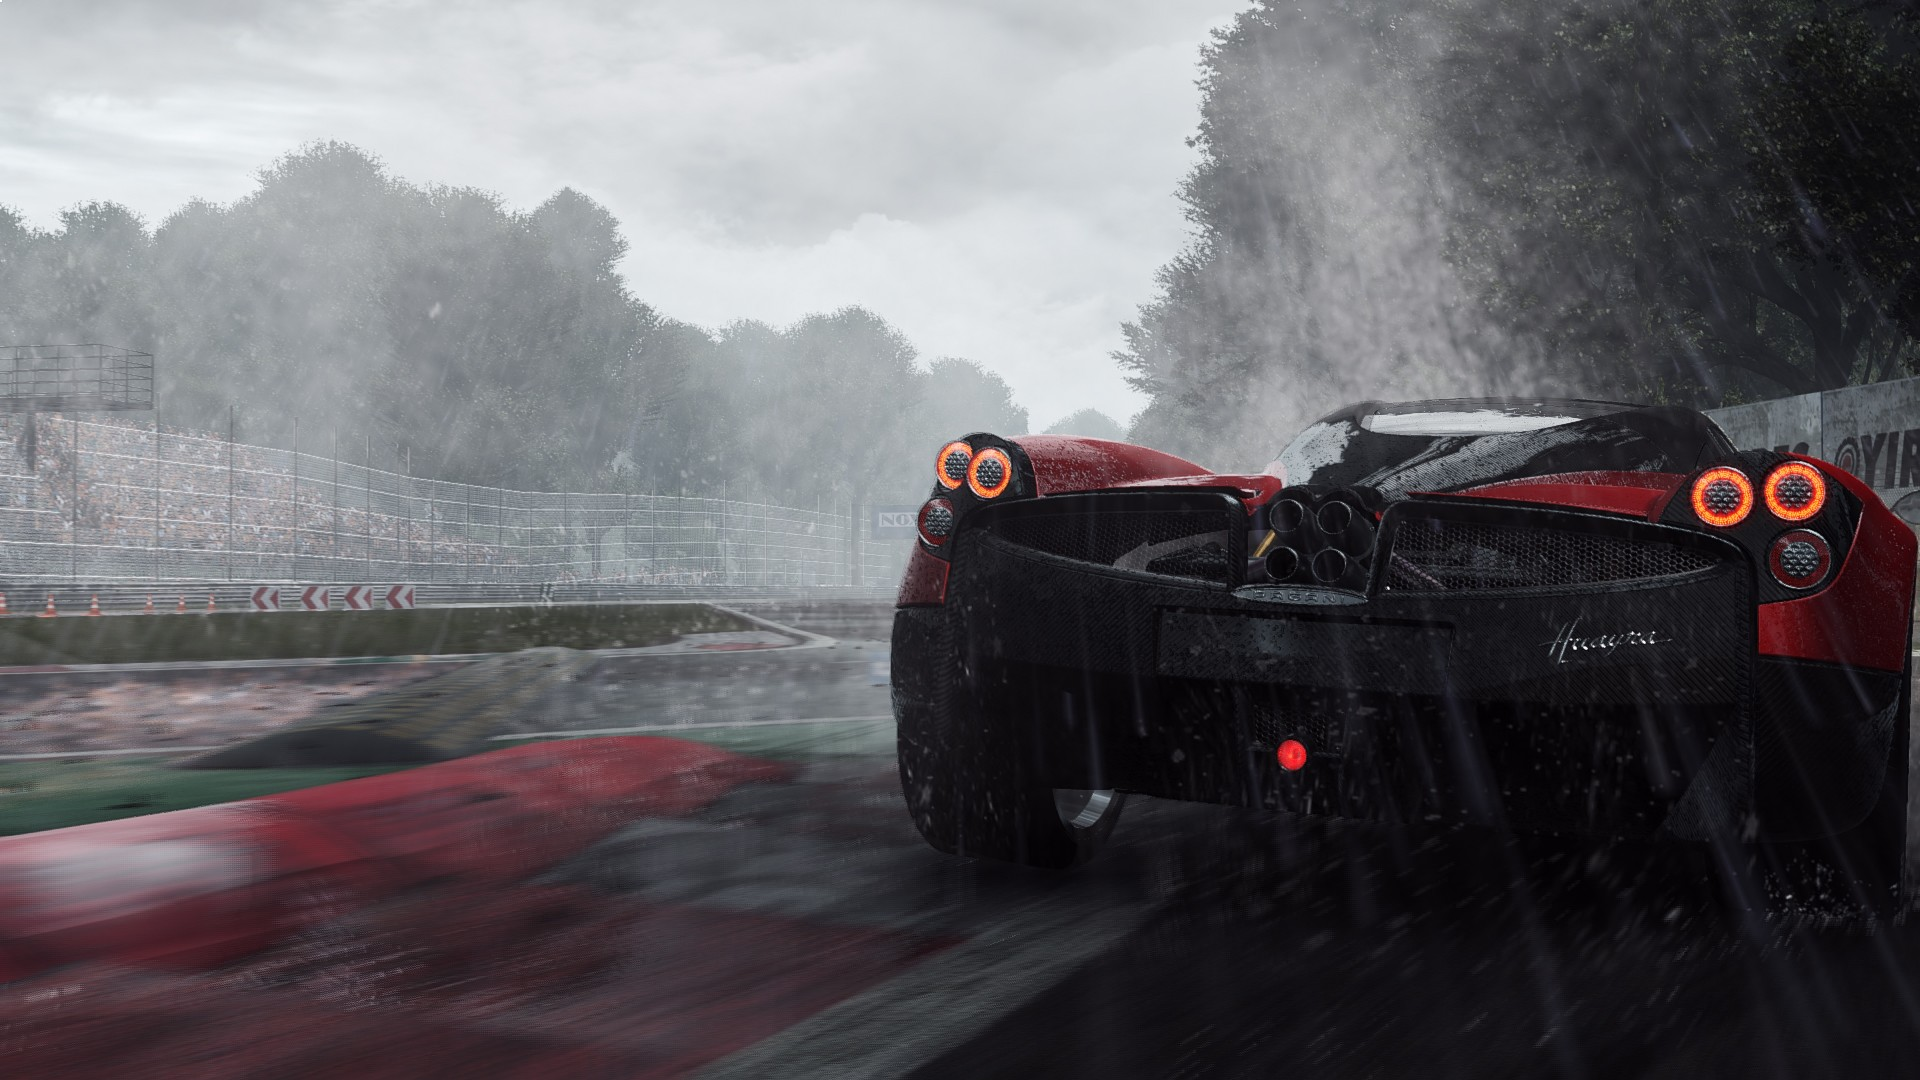 791399-cars-game-pagani-huayra-project-cars-rain-taillights-track